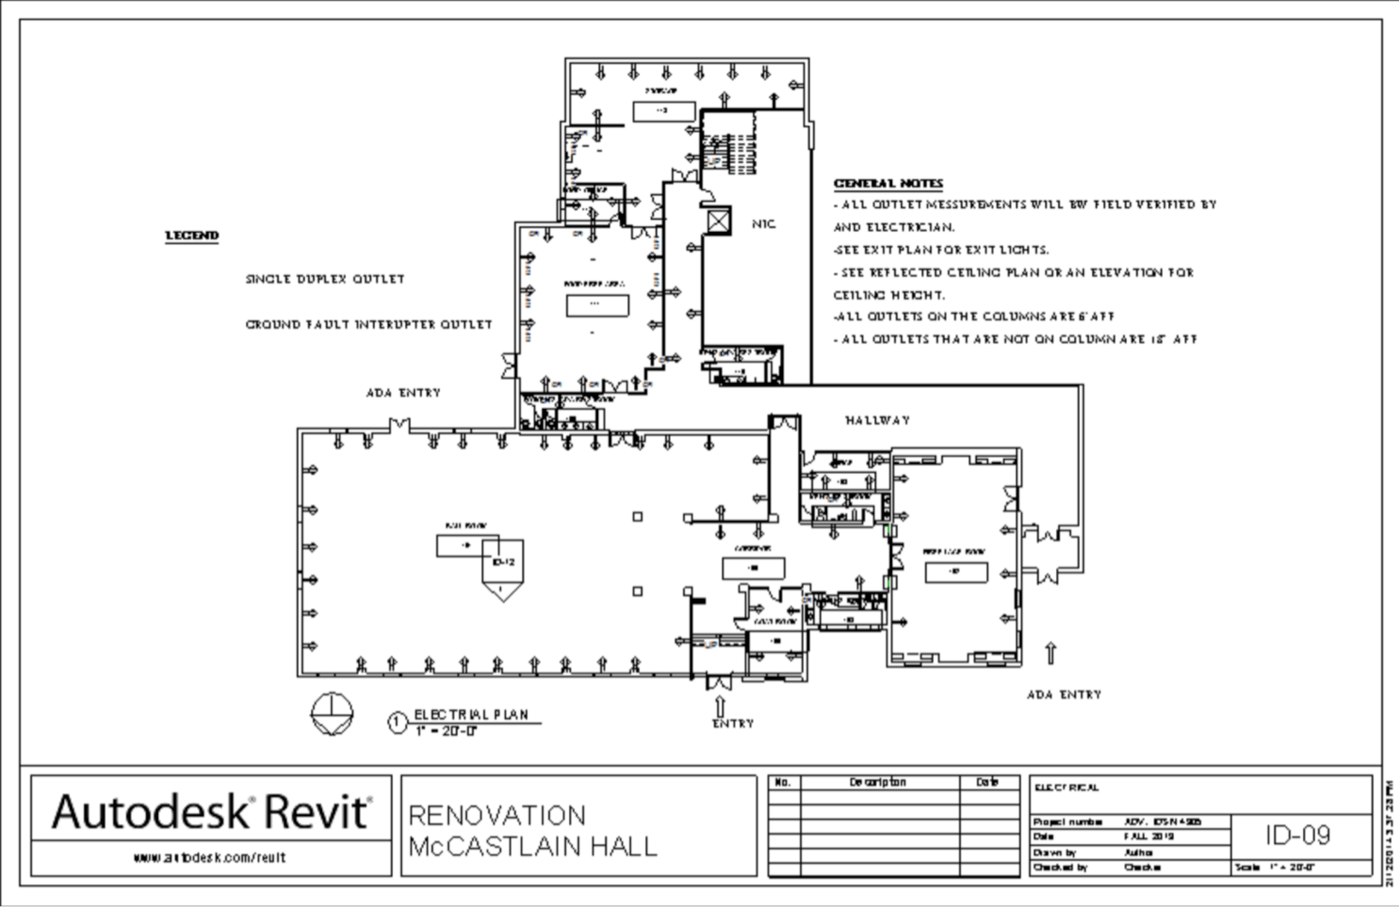 Revit Electrical Plan